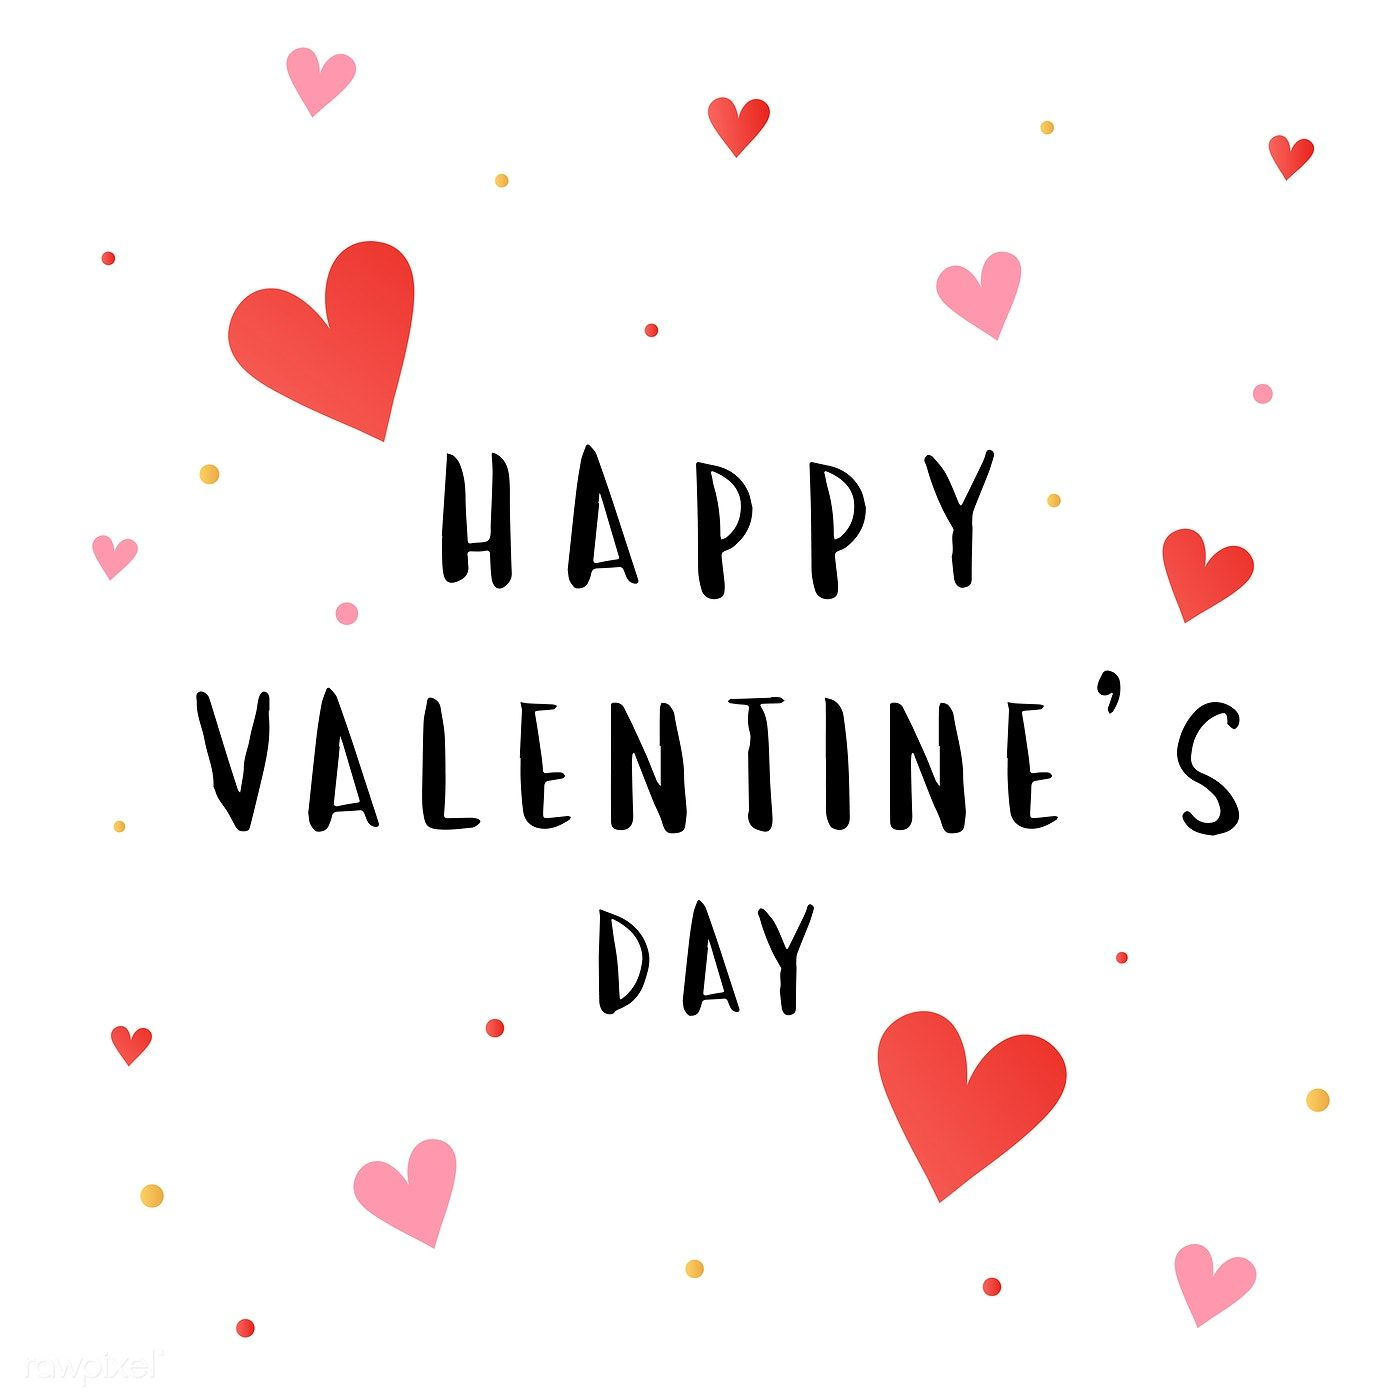 Download Free Vector Of Happy Valentines Day Card Vector 566614